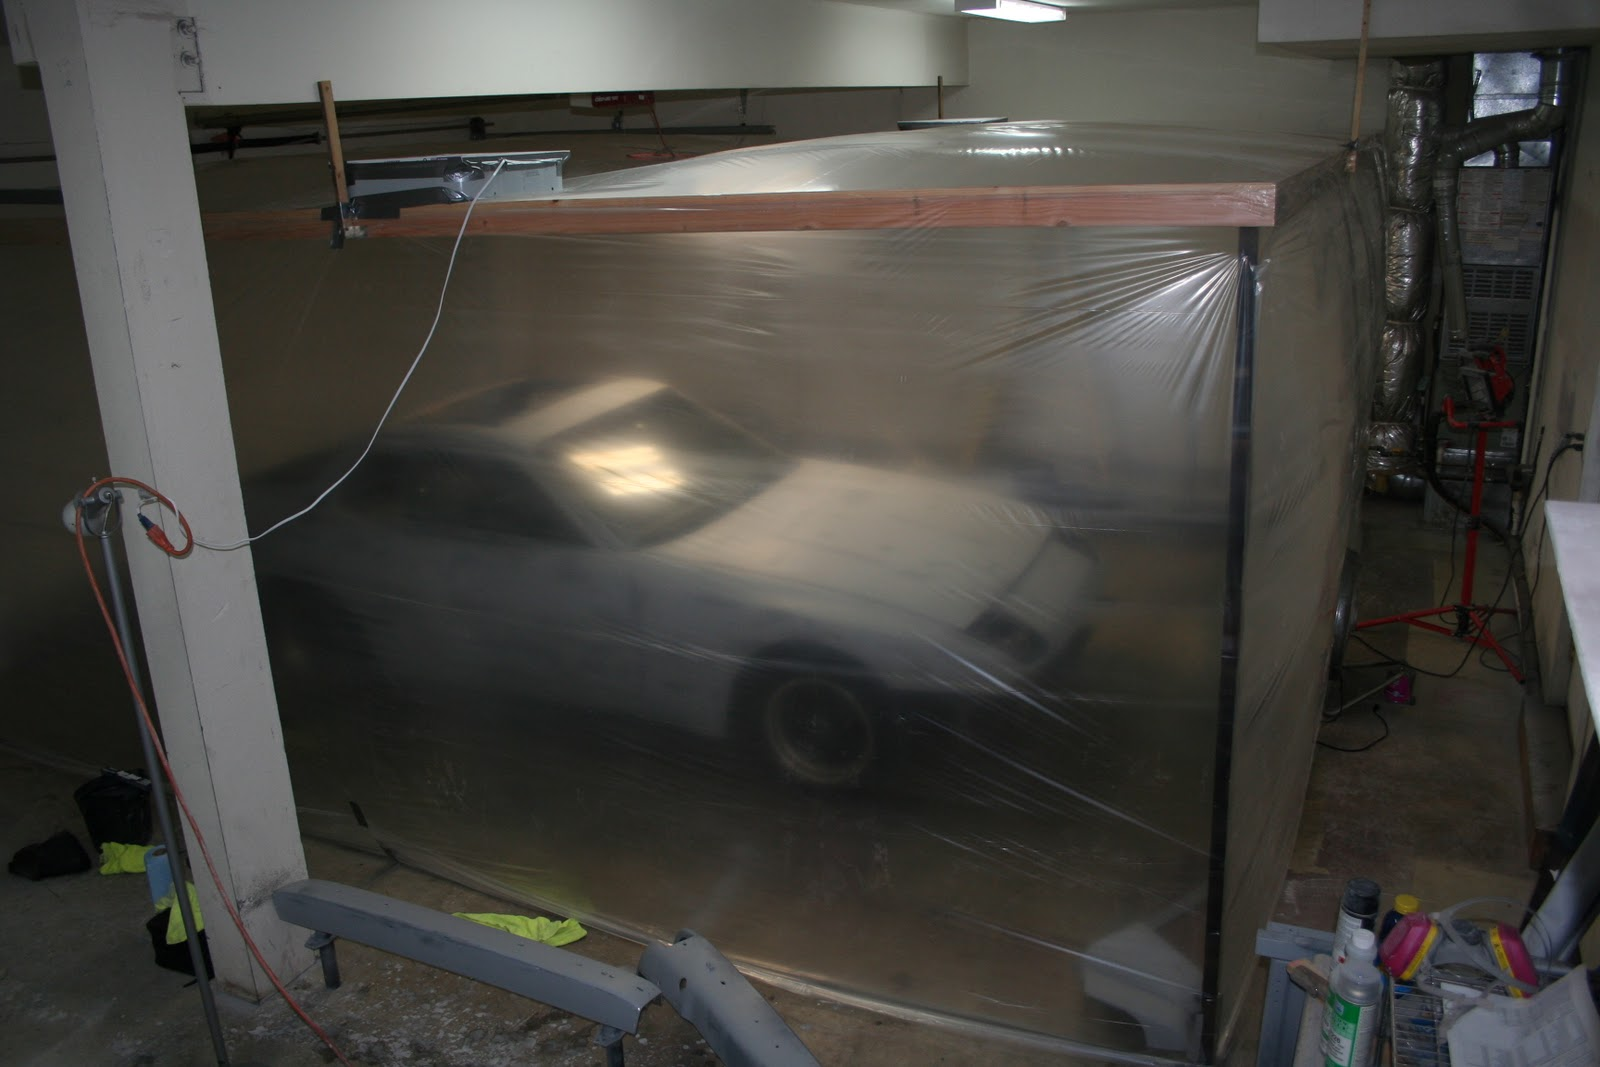 Repainting My 1983 Porsche 944 Building A Diy Spray Booth In The Garage